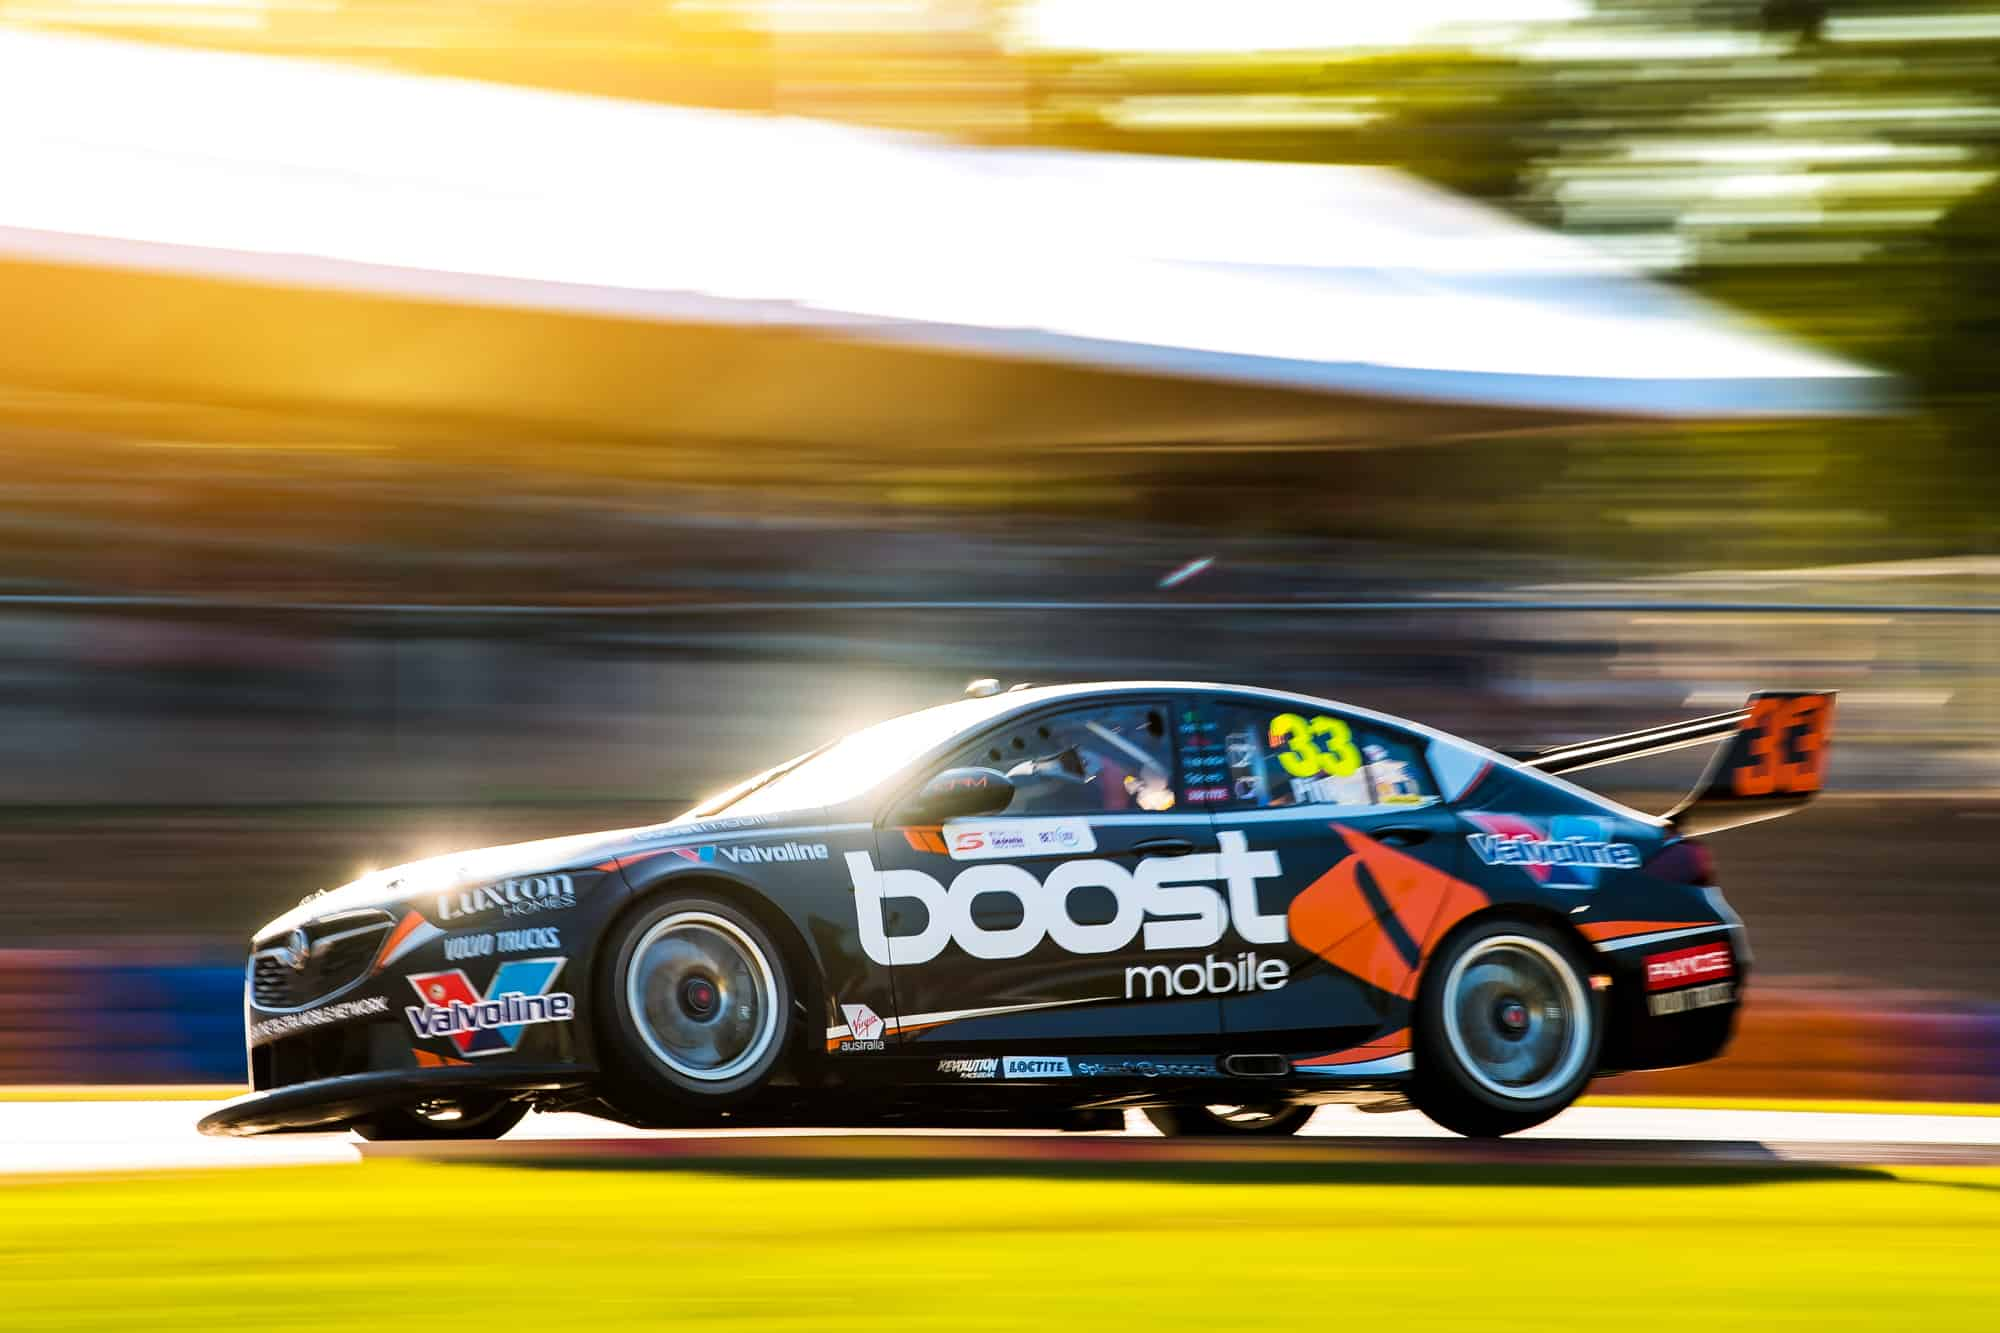 Robbo in for Boost Mobile Racing at Townsville